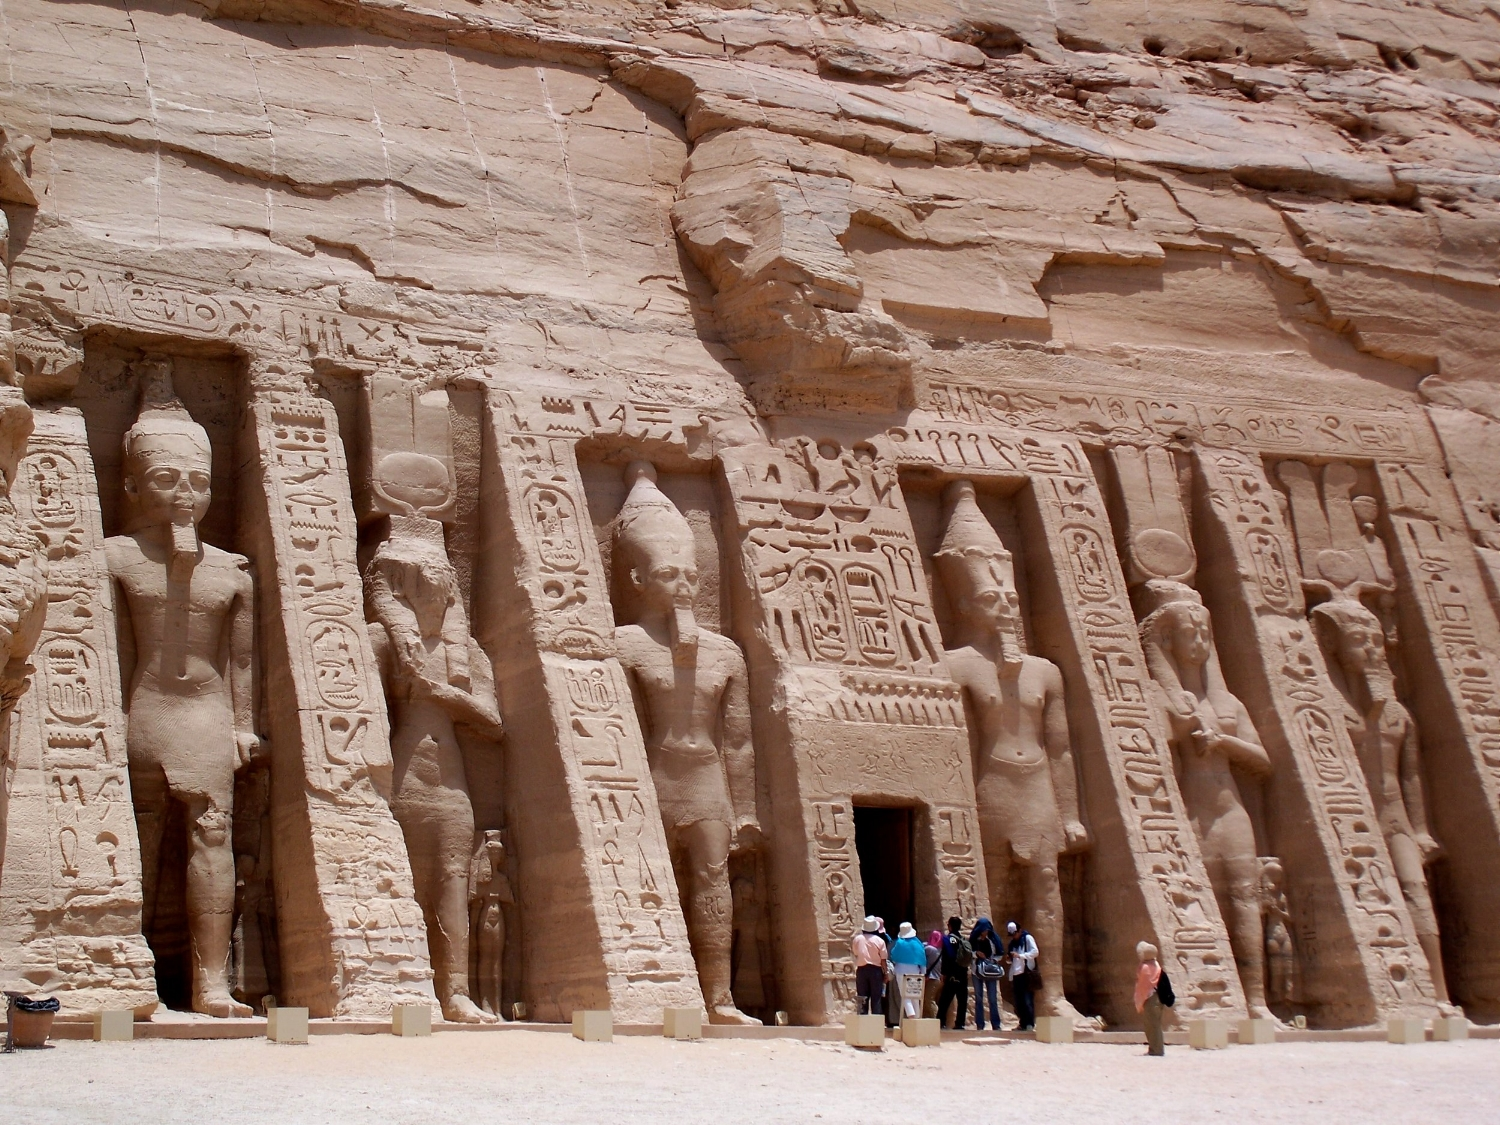 Temple of Queen Nefertari dedicated to Goddess Hathor